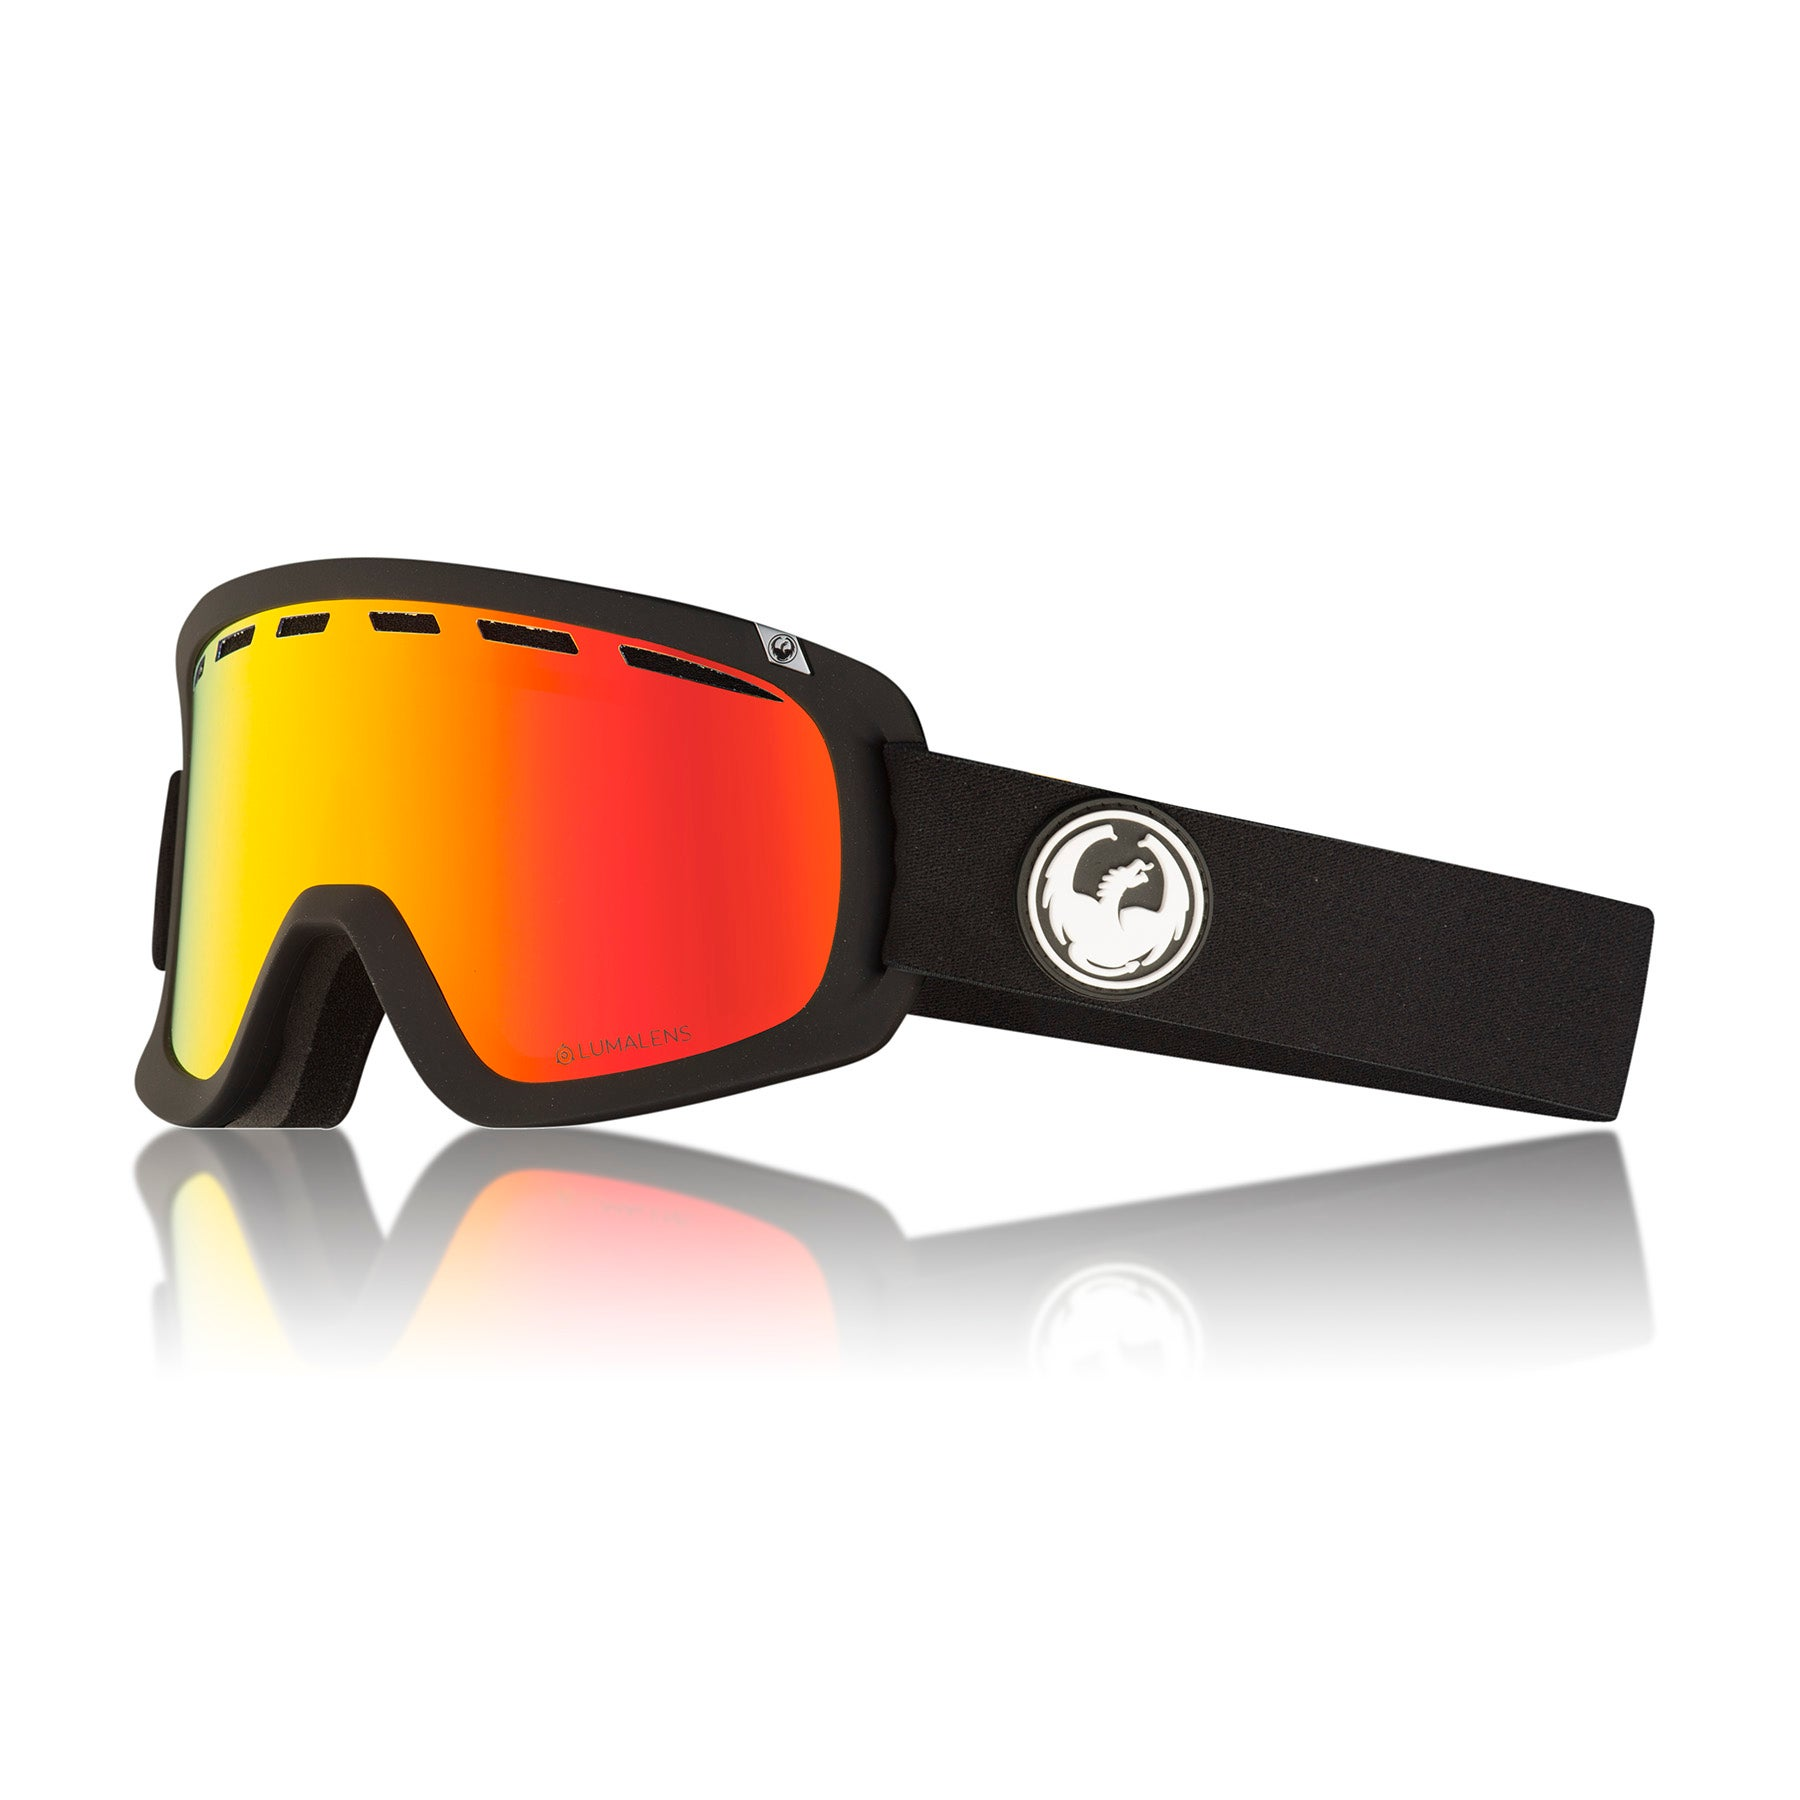 Dragon D1 OTG Snow Goggles - Black ~ LumaLens Red Ion